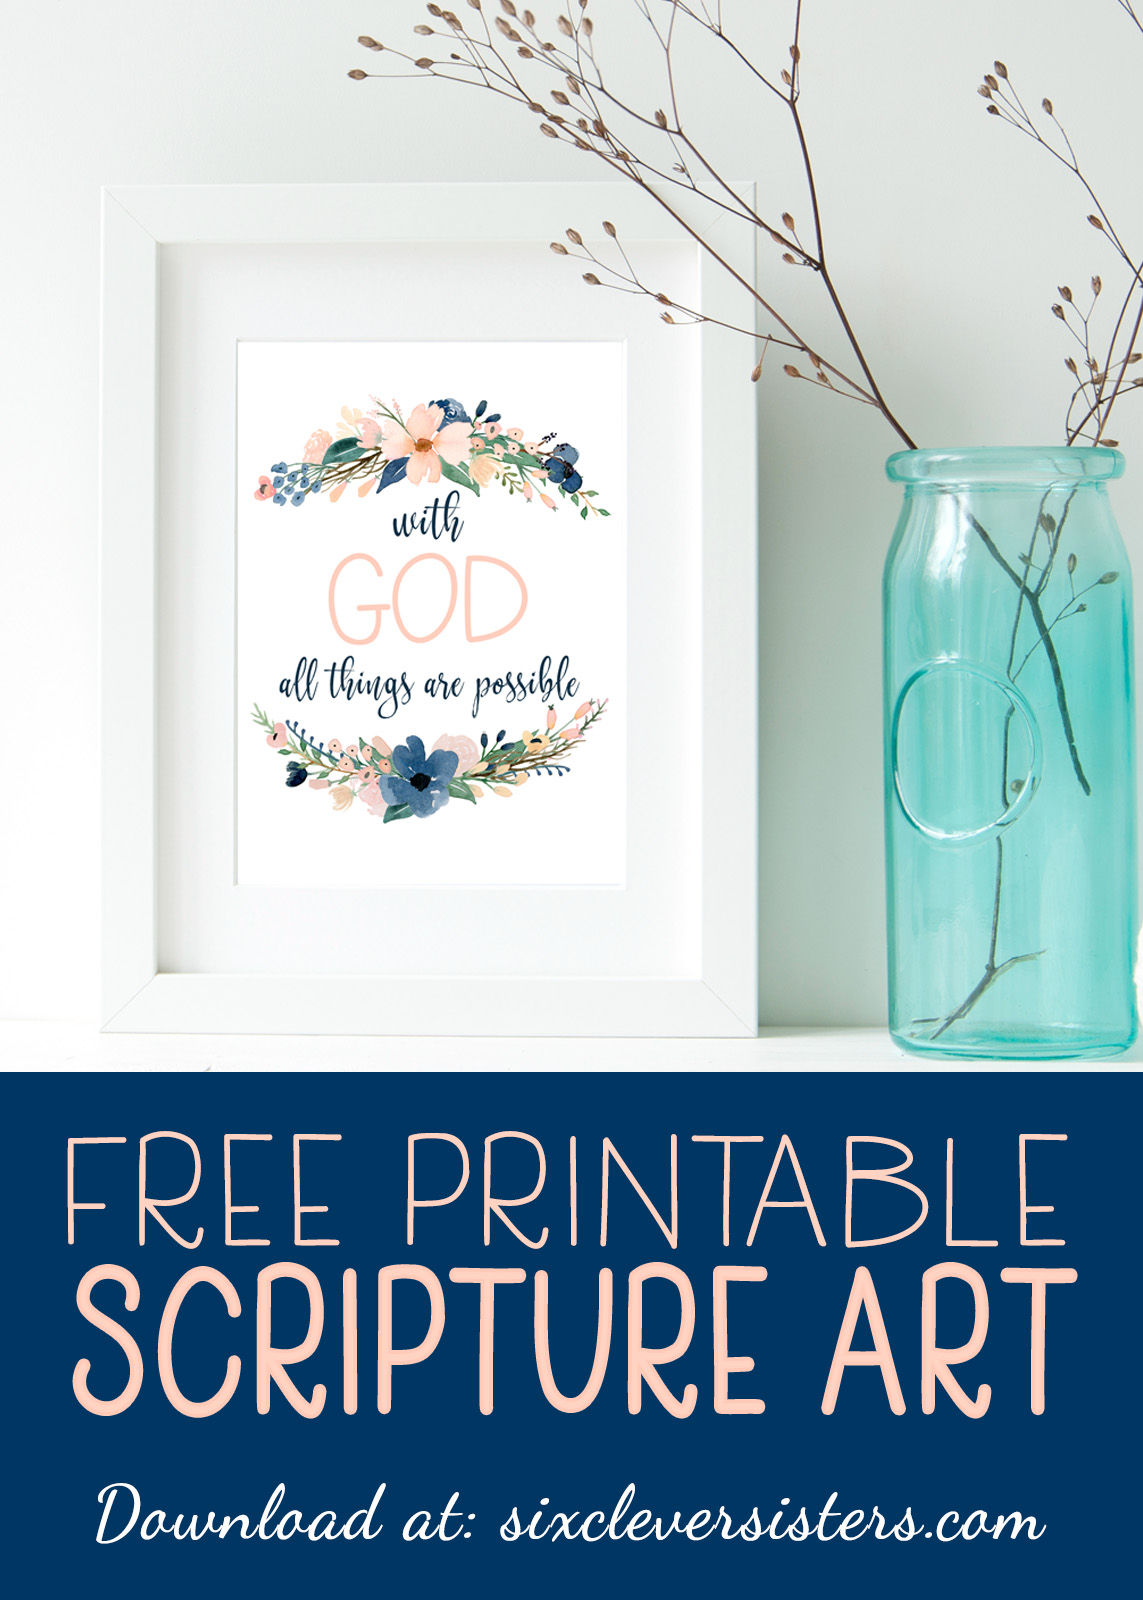 image regarding Free Printable Scripture Verses referred to as No cost Printable Scripture Artwork: With God - 6 Wise Sisters